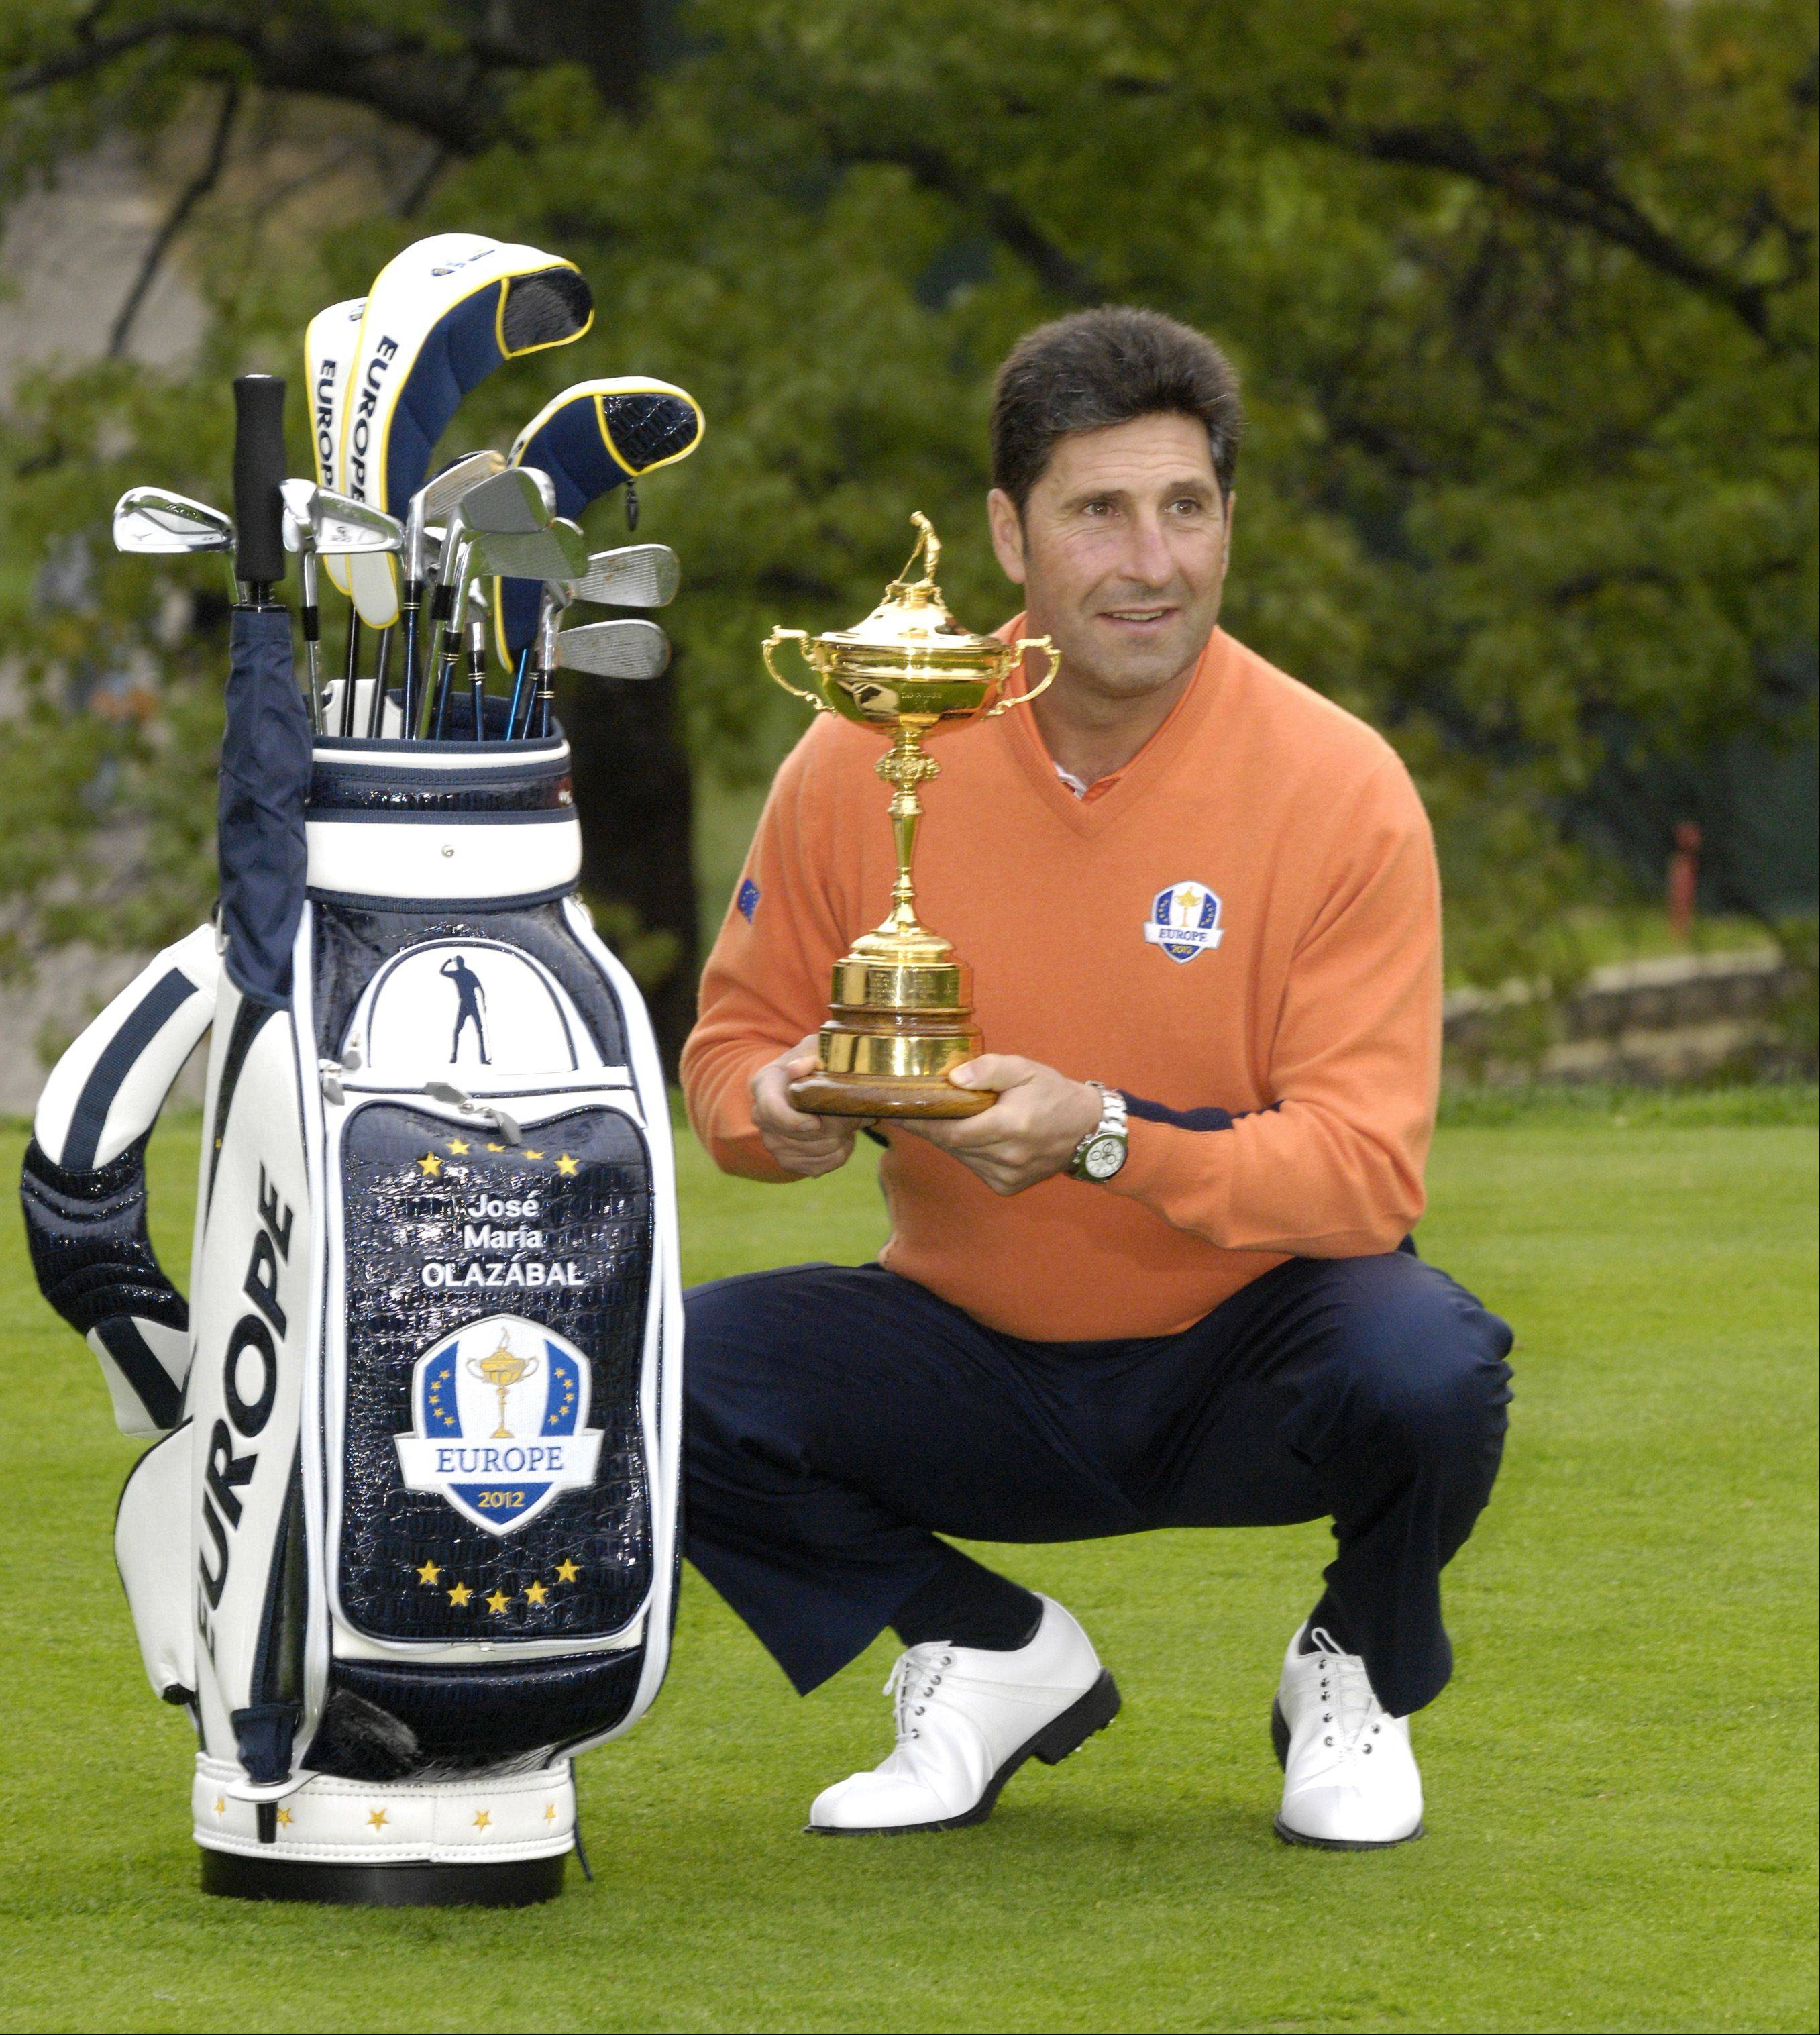 The European Ryder Cup team captain Jose Maria Olazabal poses for a portrait with the Ryder Cup Trophy and team.